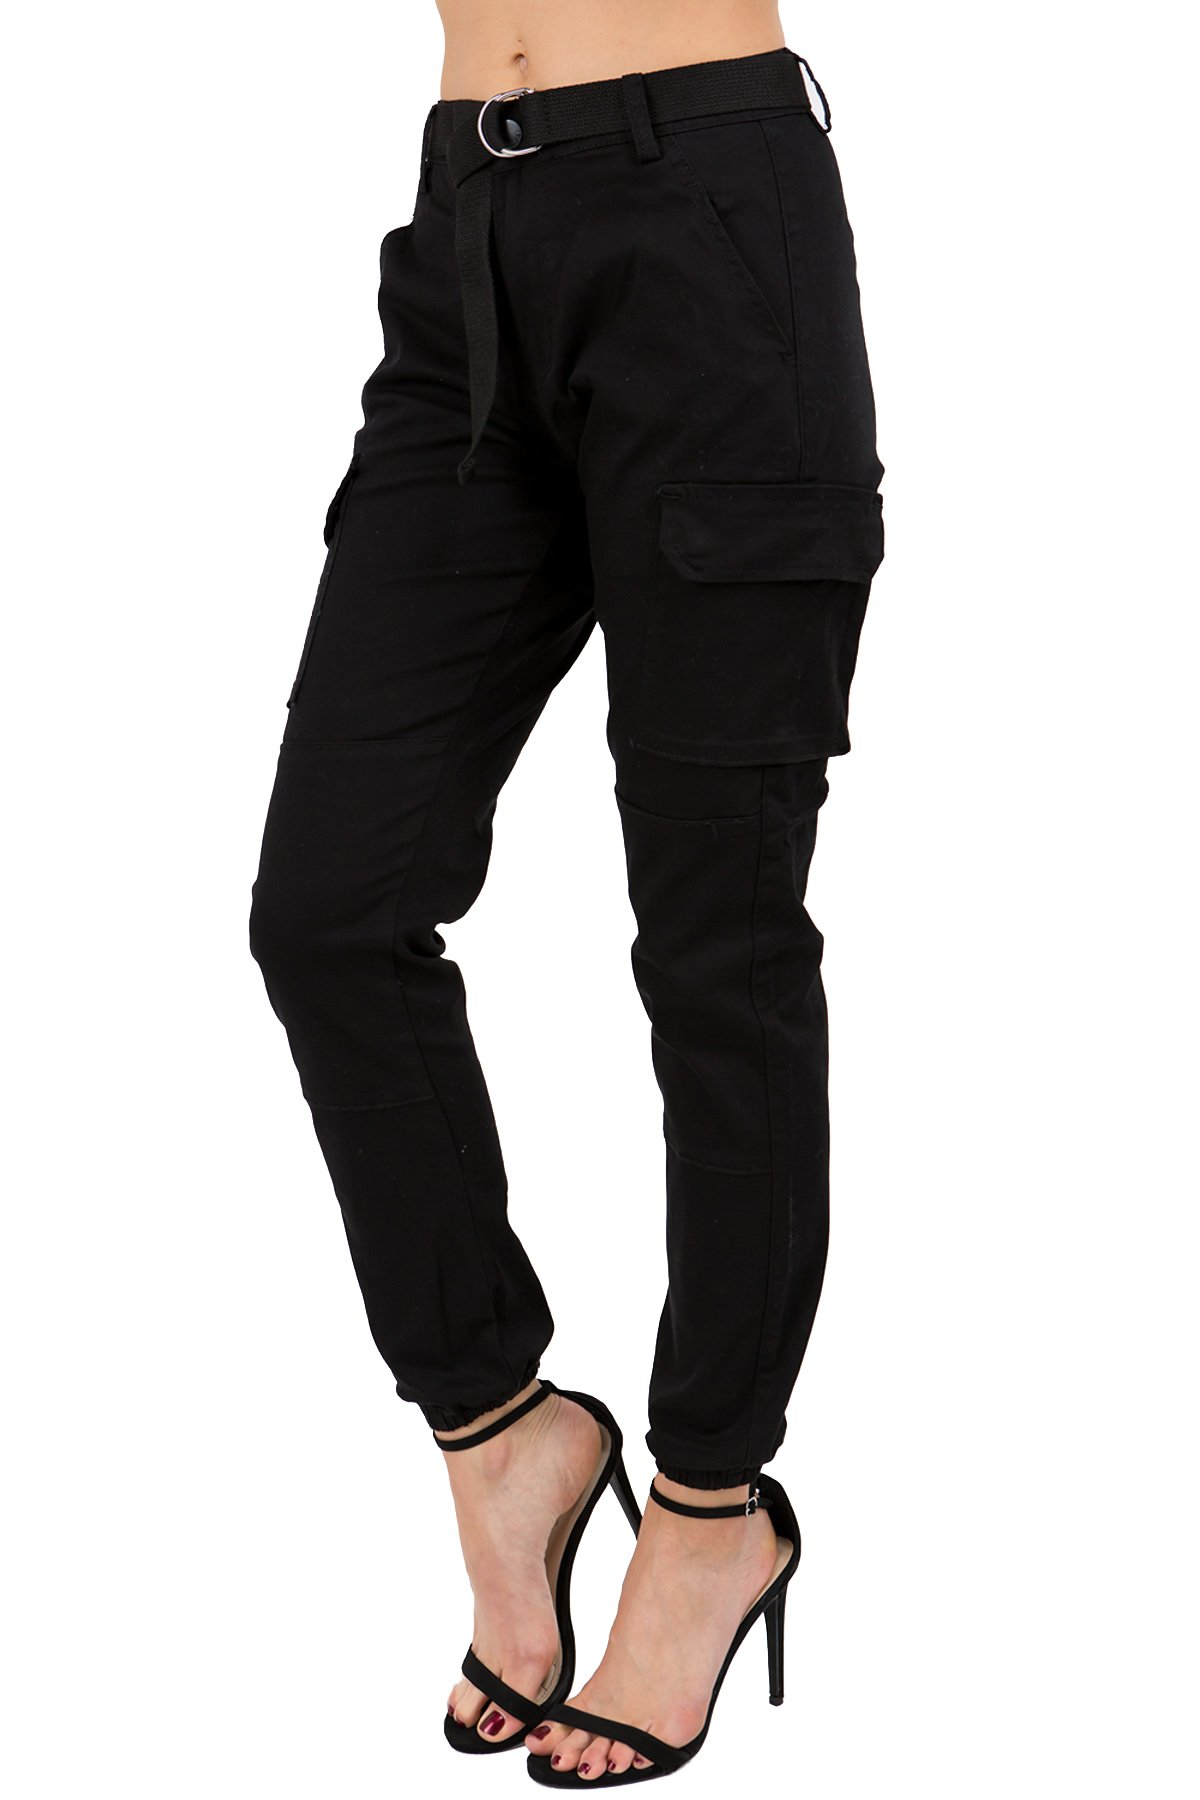 TwiinSisters Women's High Rise Slim Fit Color Jogger Pants with Matching Belt - Size Small to 3X